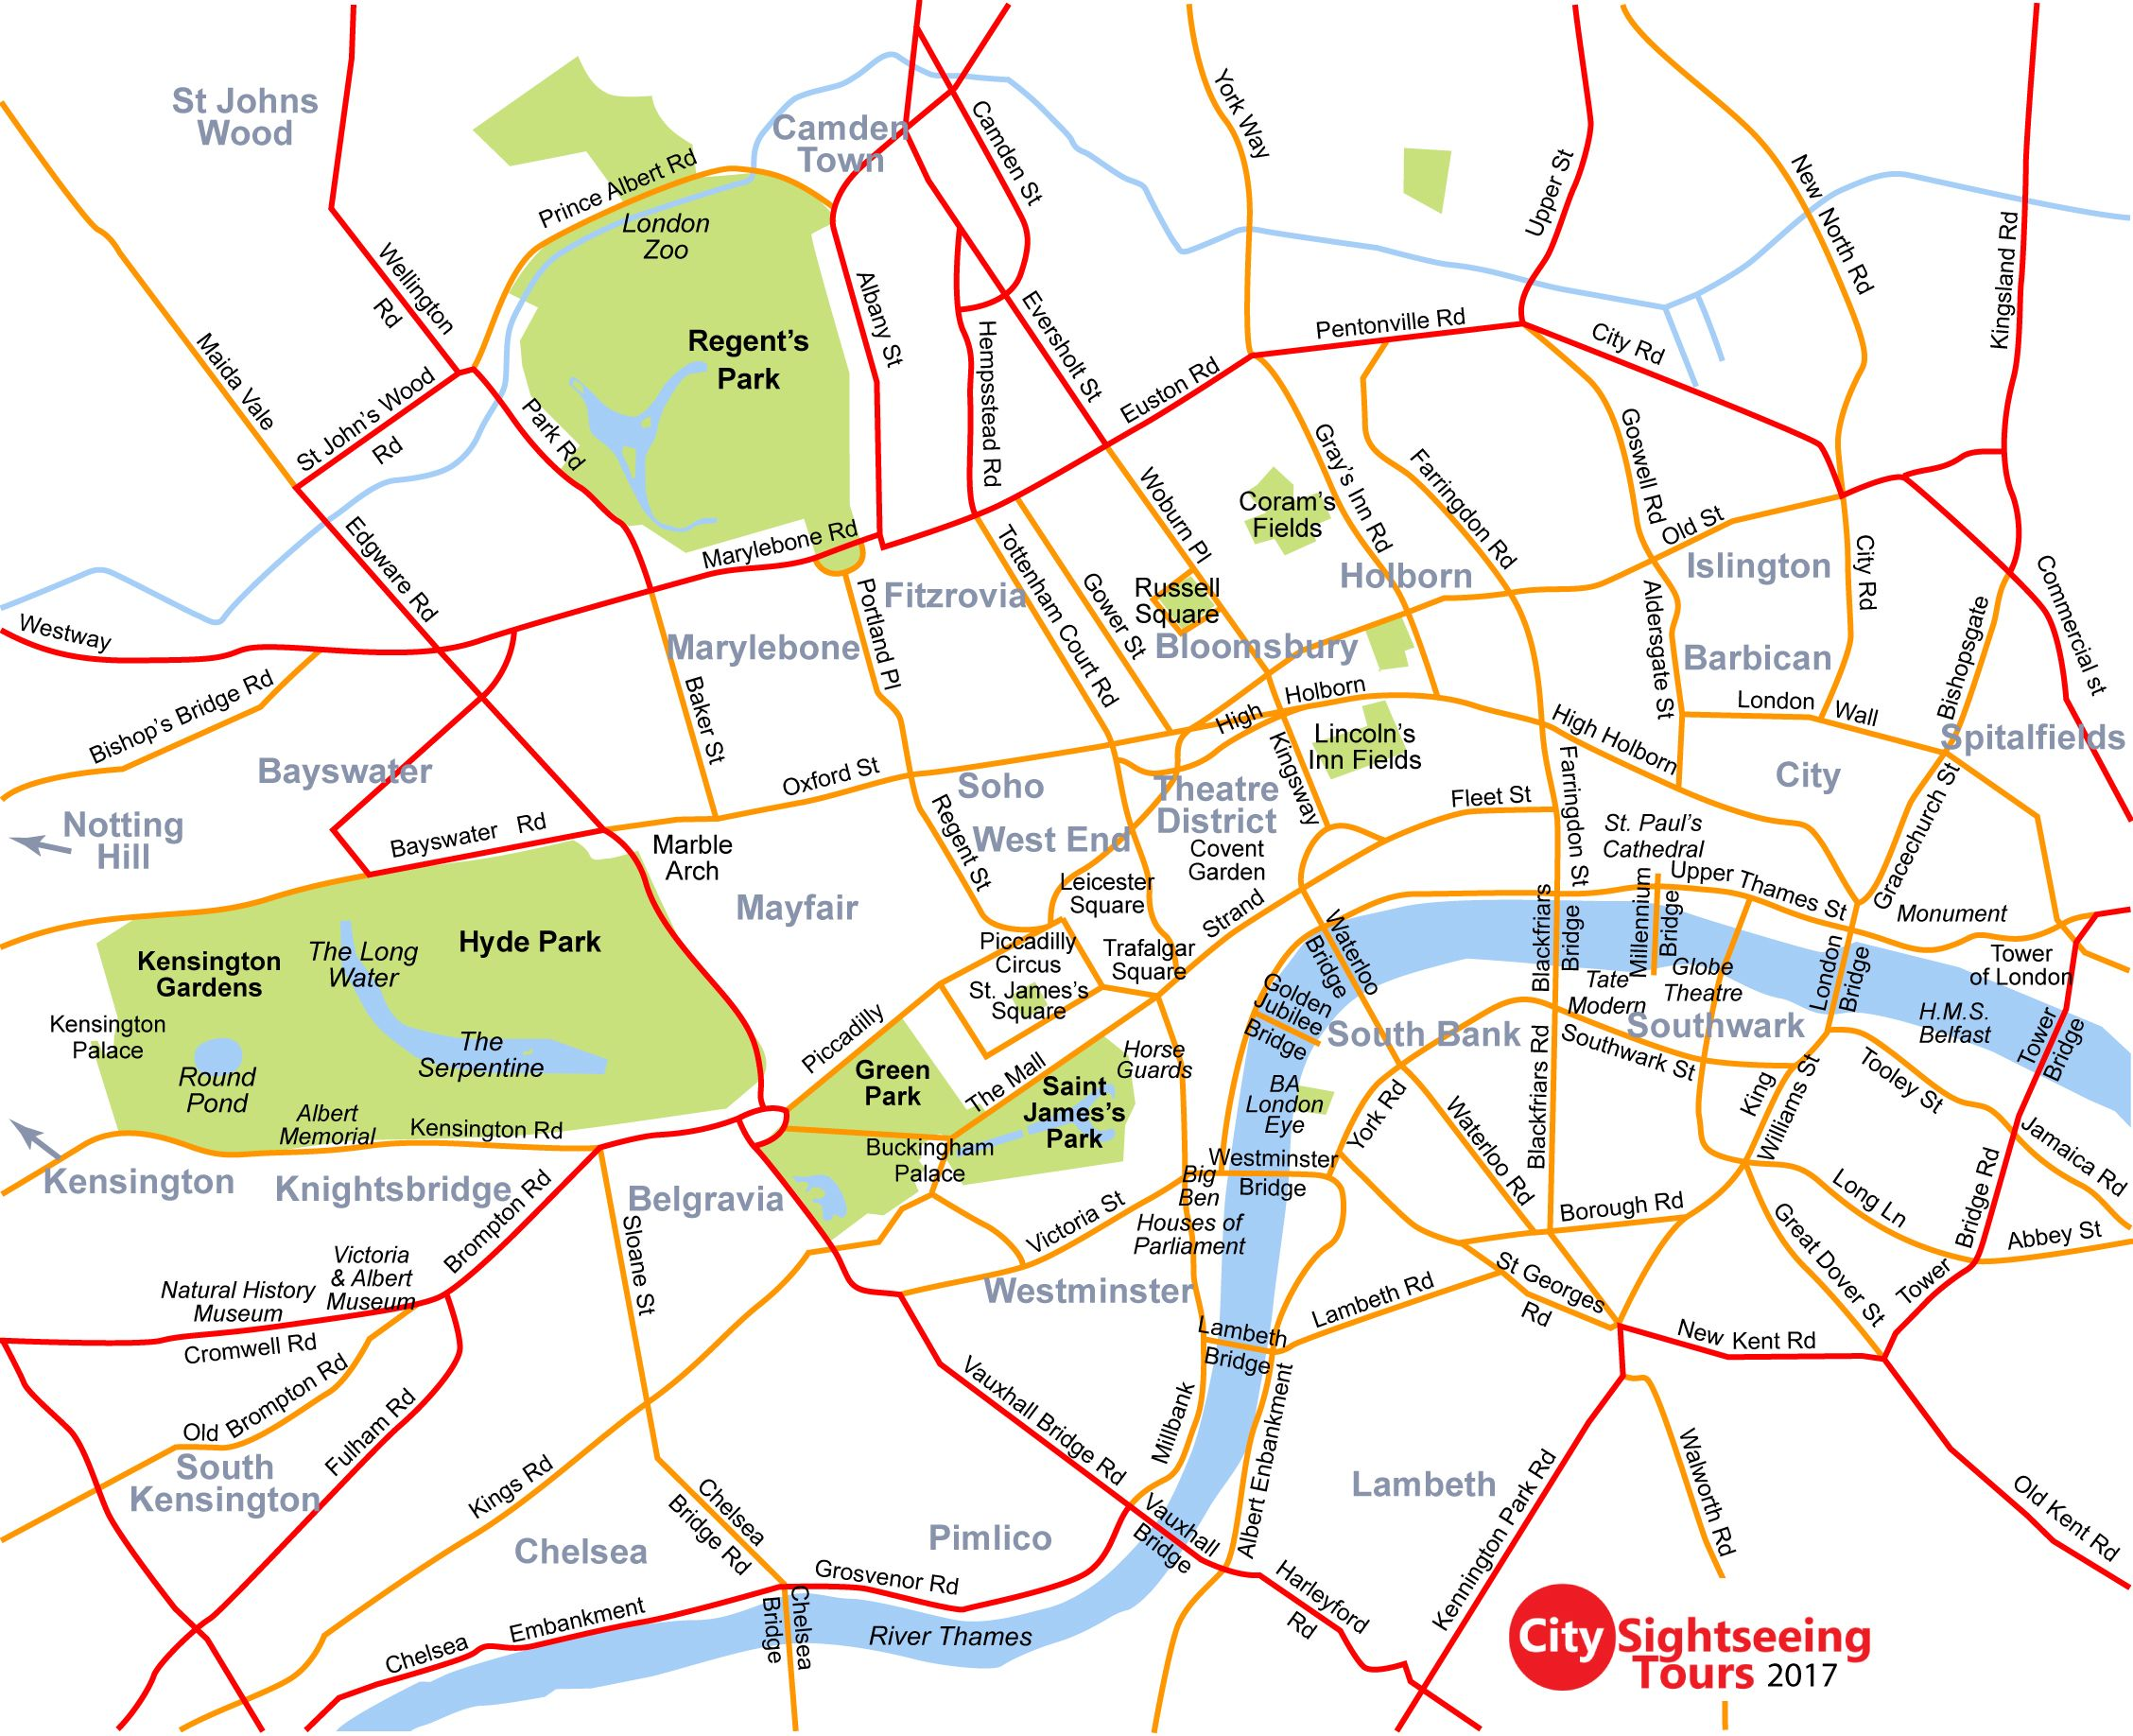 Map London Neighborhoods.Map Of London Neighborhoods London Neighborhood Map With List Of